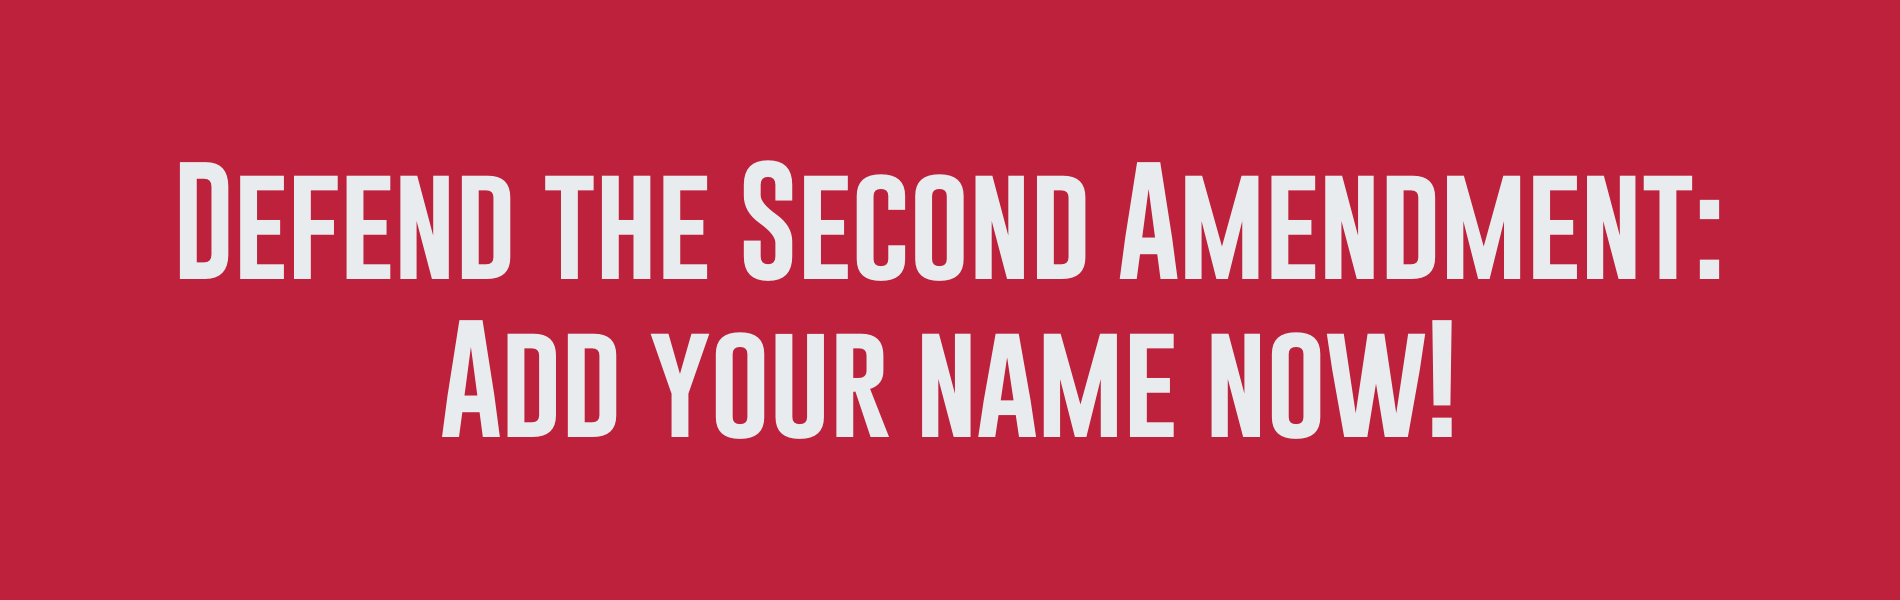 Support The Second Amendment - Add Your Name